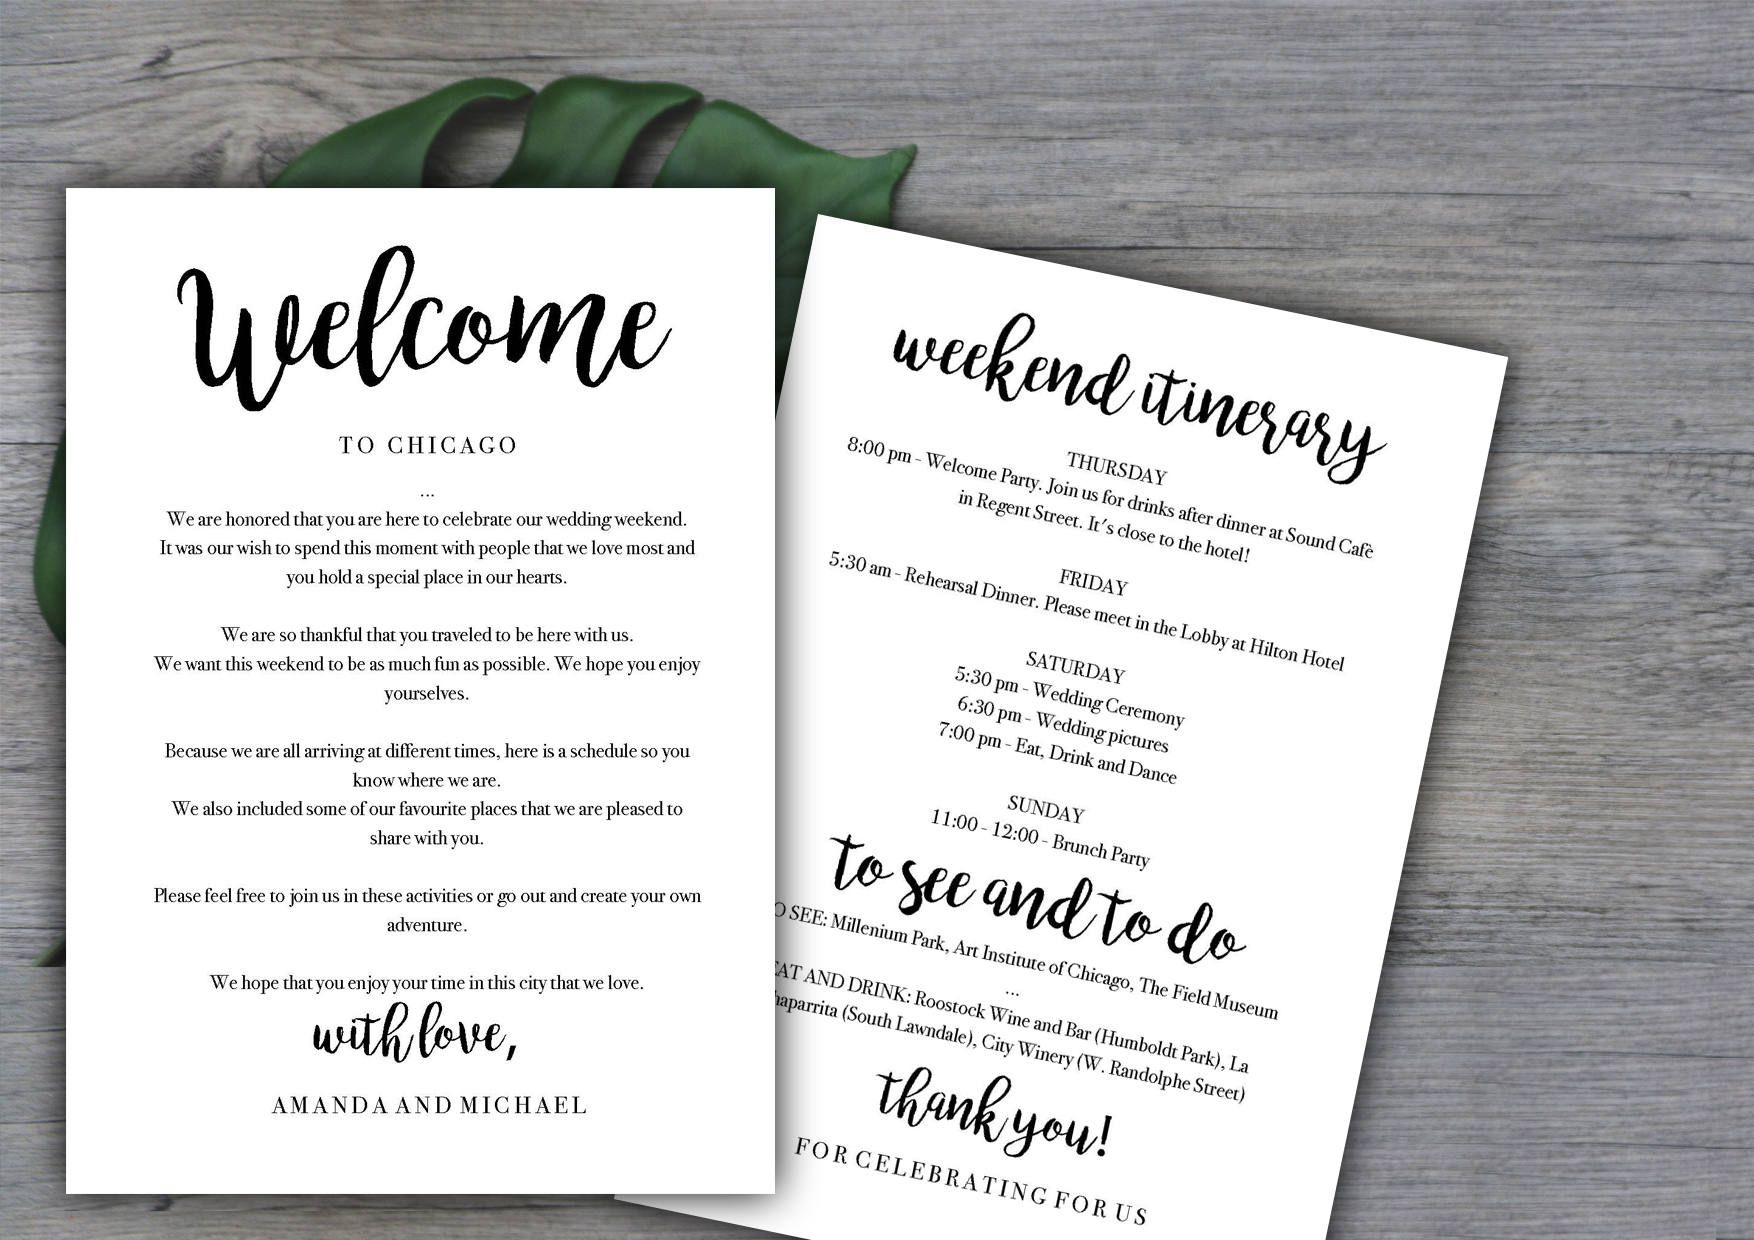 007 Fascinating Wedding Welcome Bag Letter Template Free High Def Full